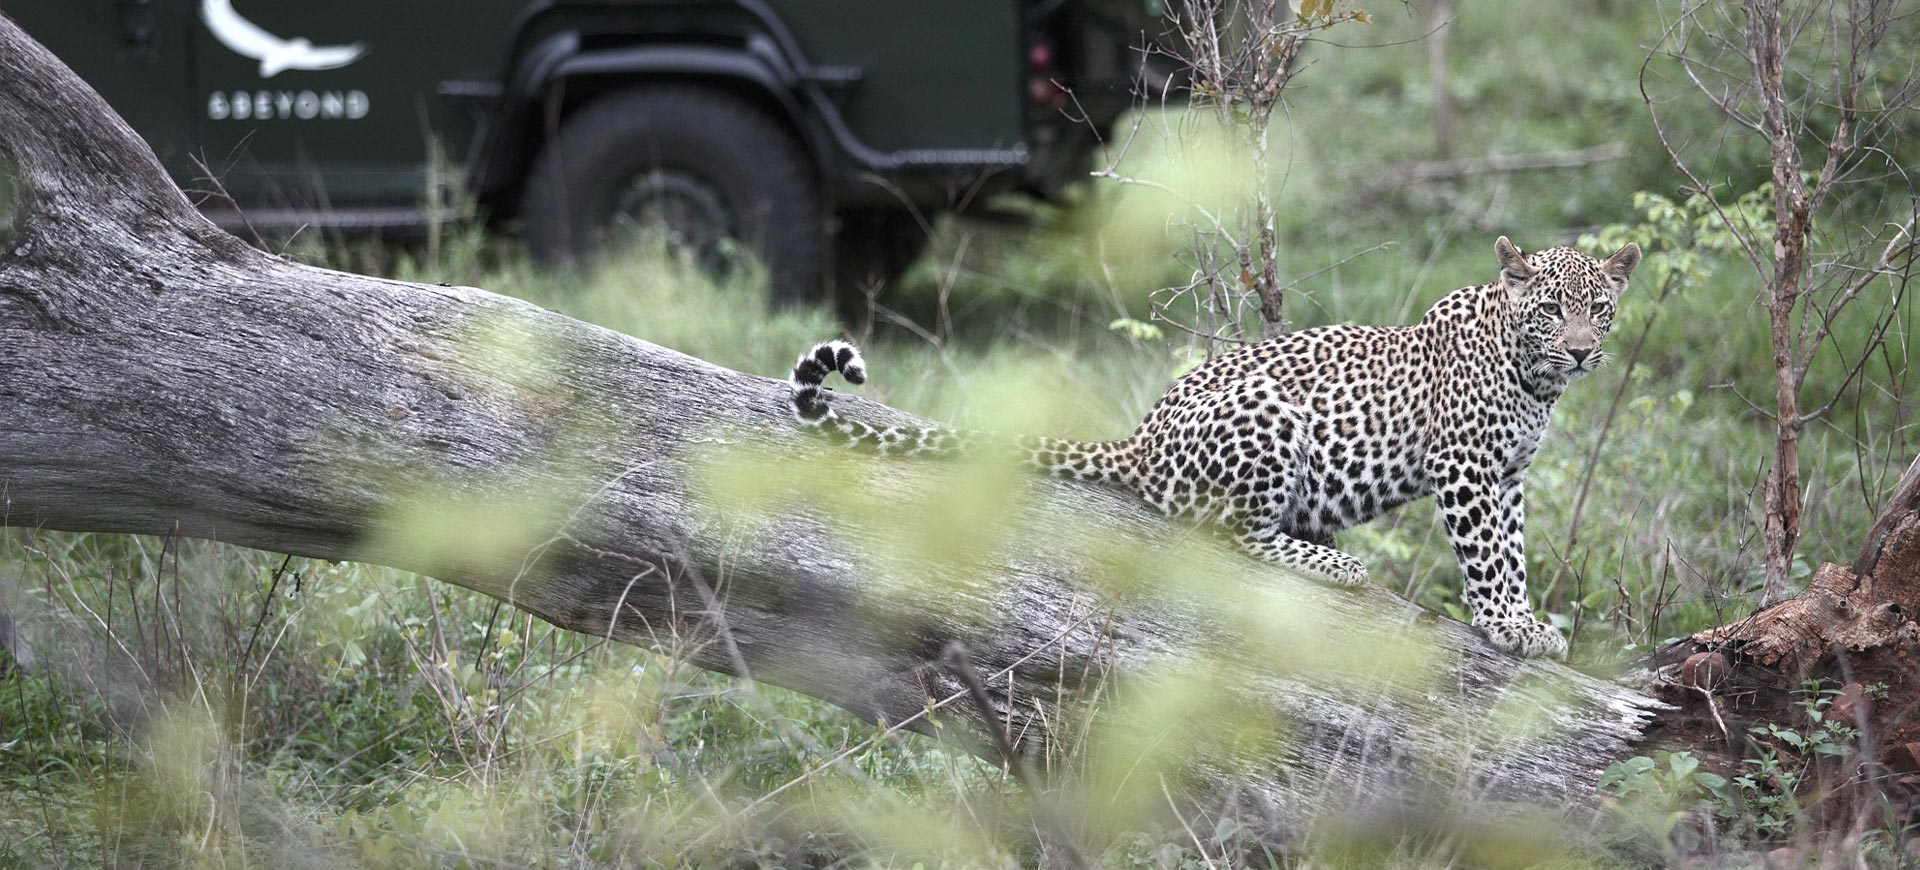 Wildlife Conservation Kruger